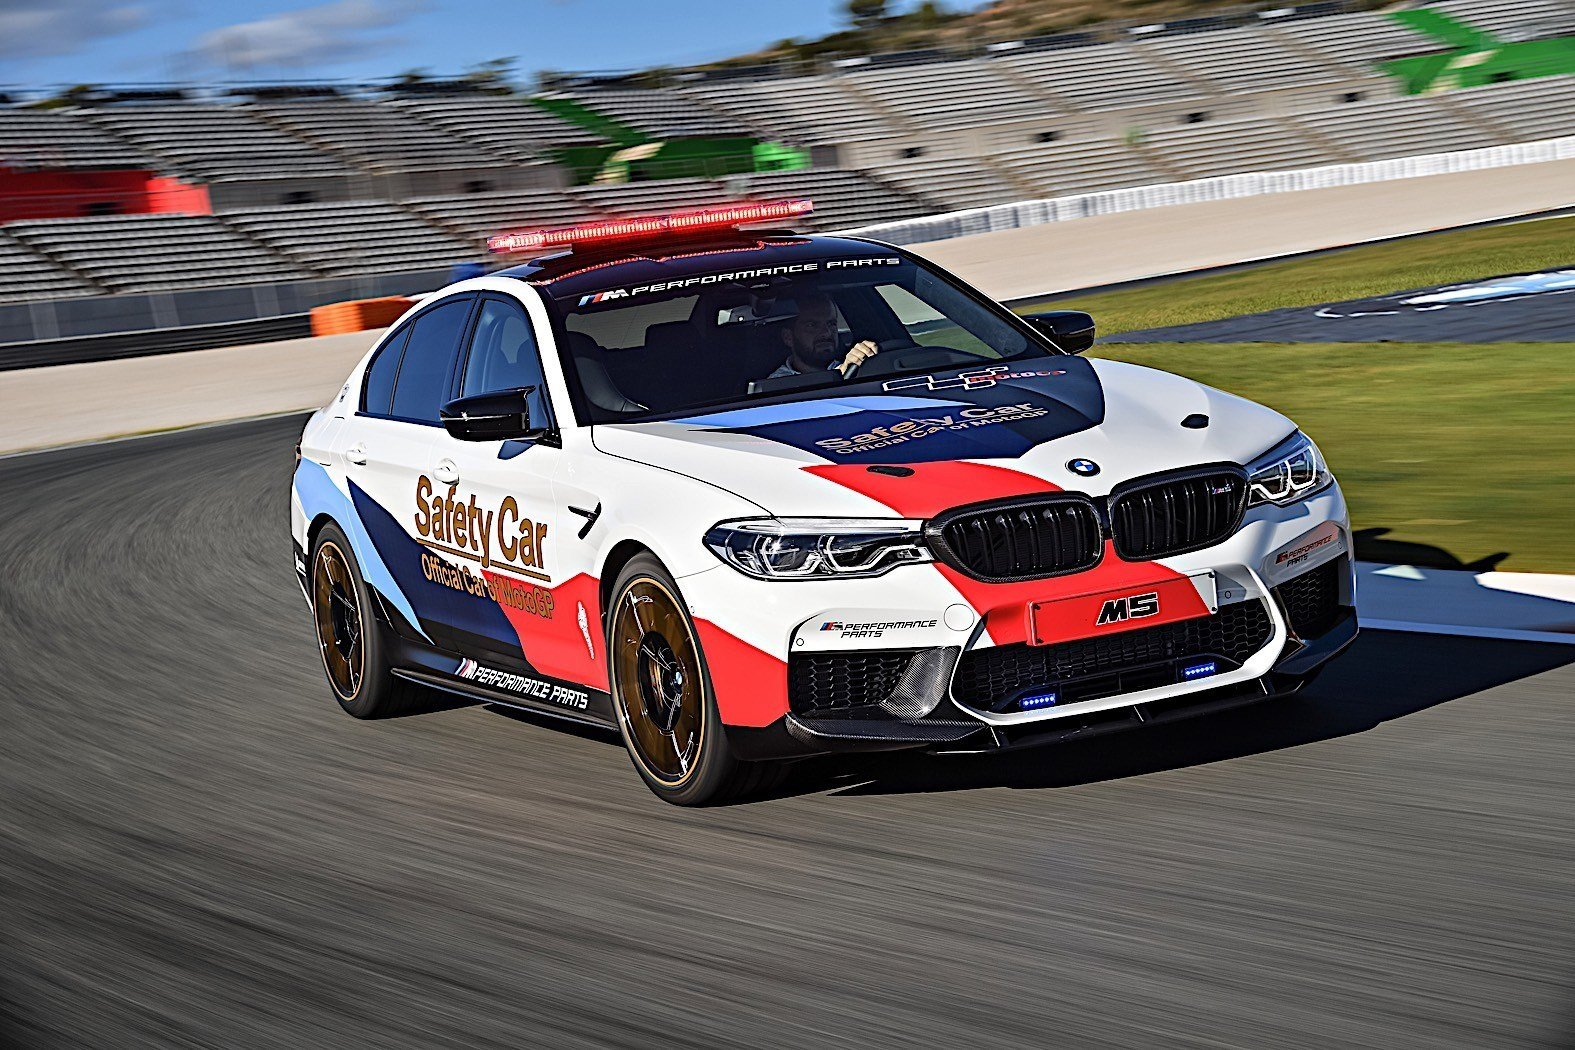 Latest 2018 Bmw M5 Motogp Safety Car Gets Ready For Season Start Free Download